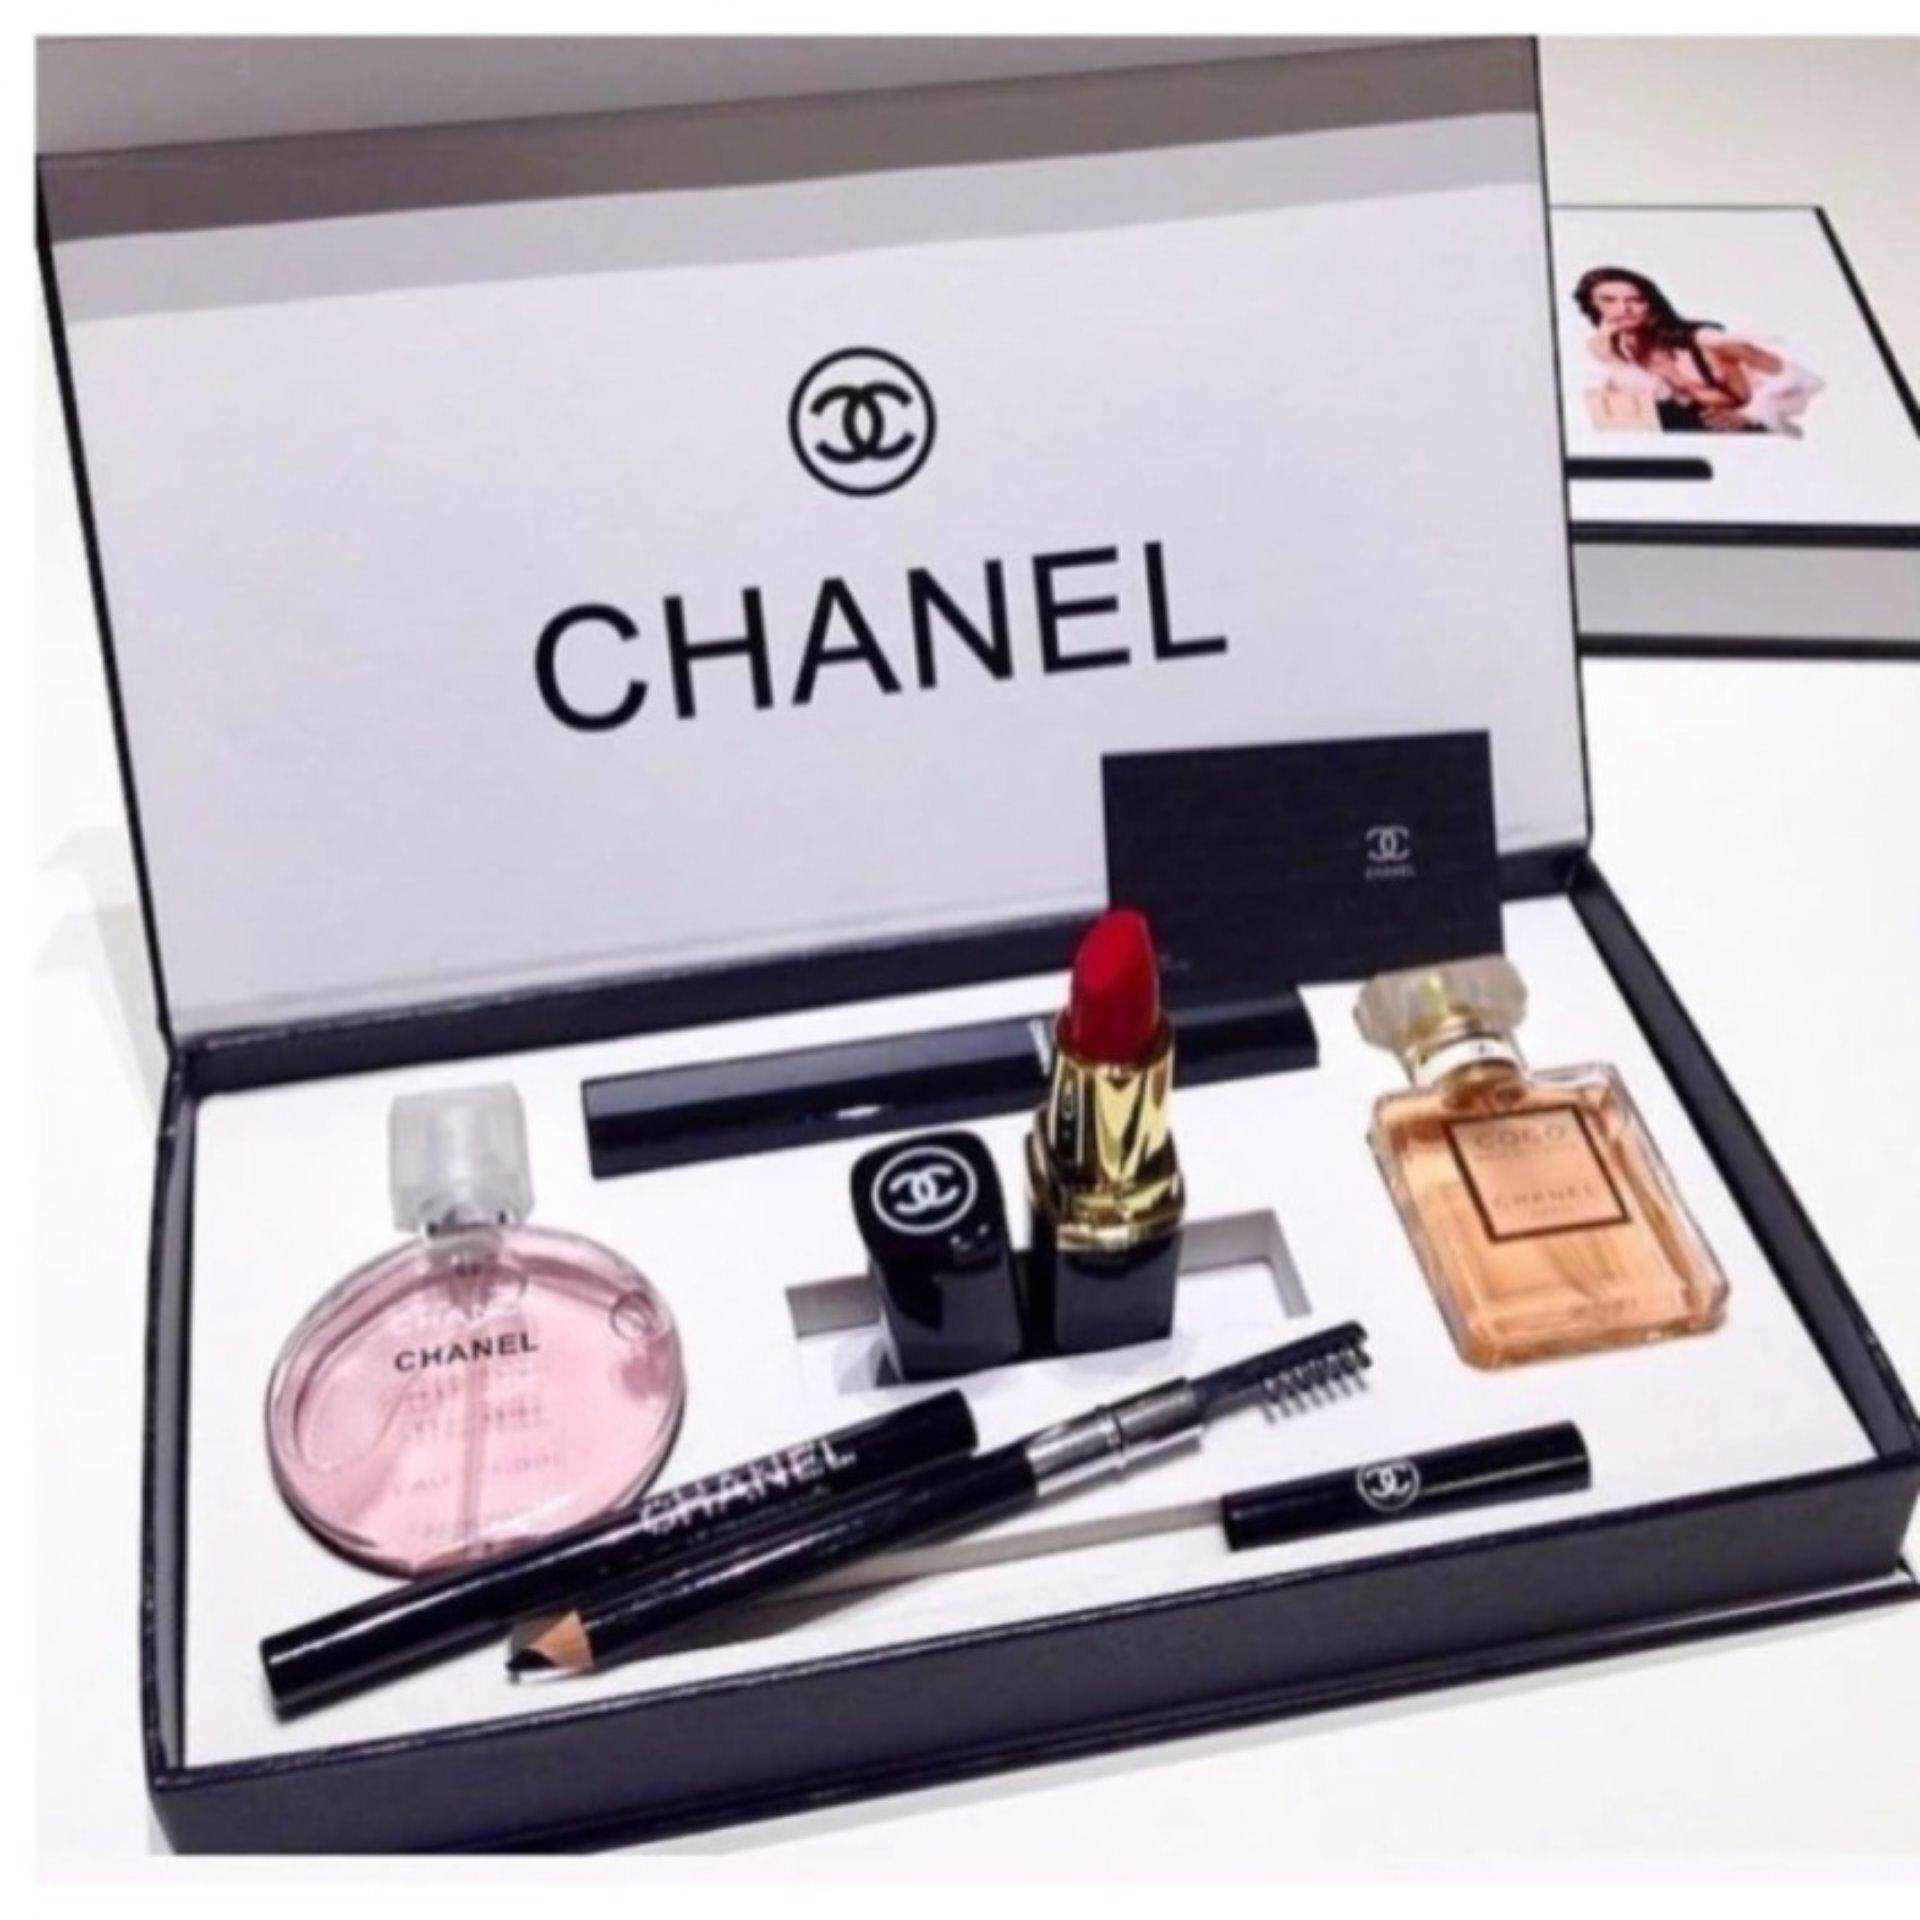 Image result for Chanel 5 in 1 set